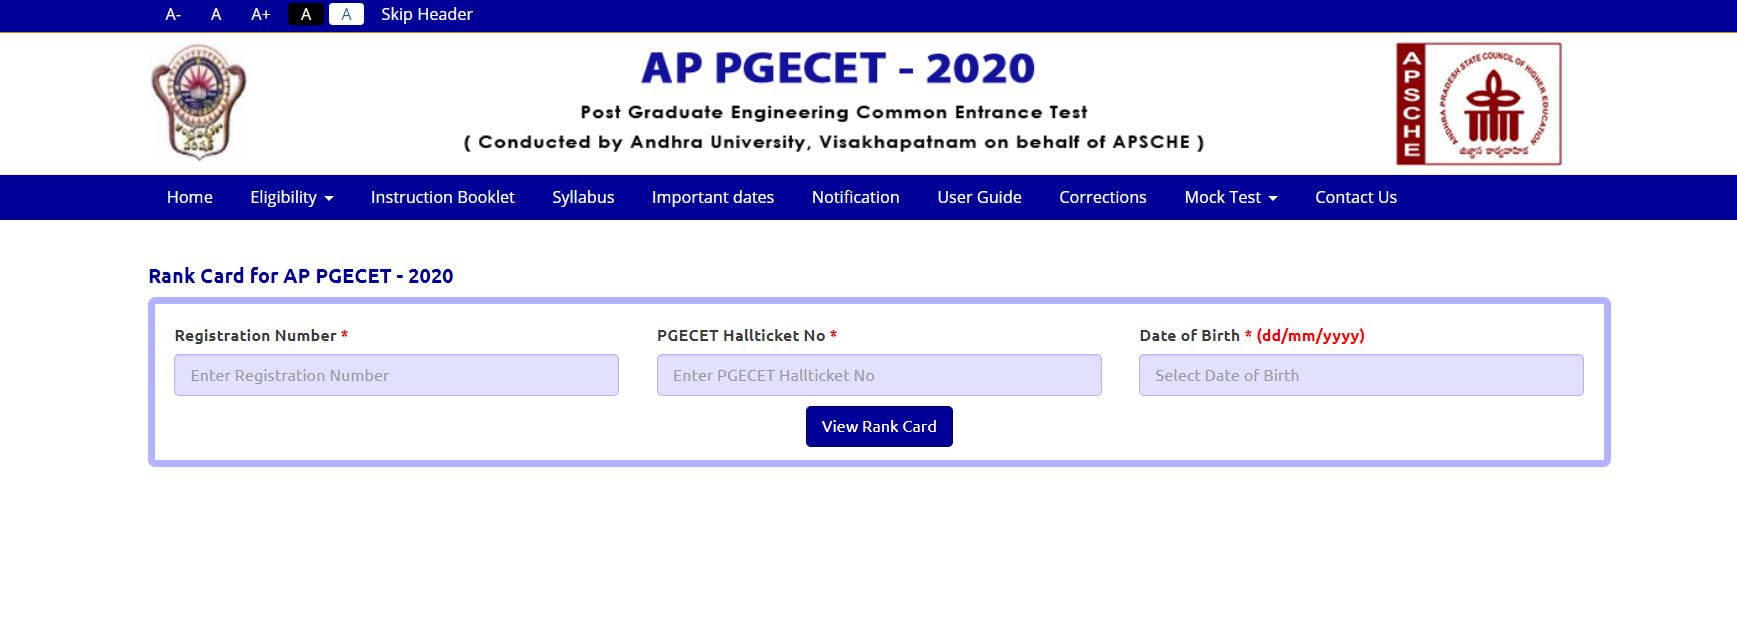 AP PGECCET 2020 Rank Card Released @sche.ap.gov.in